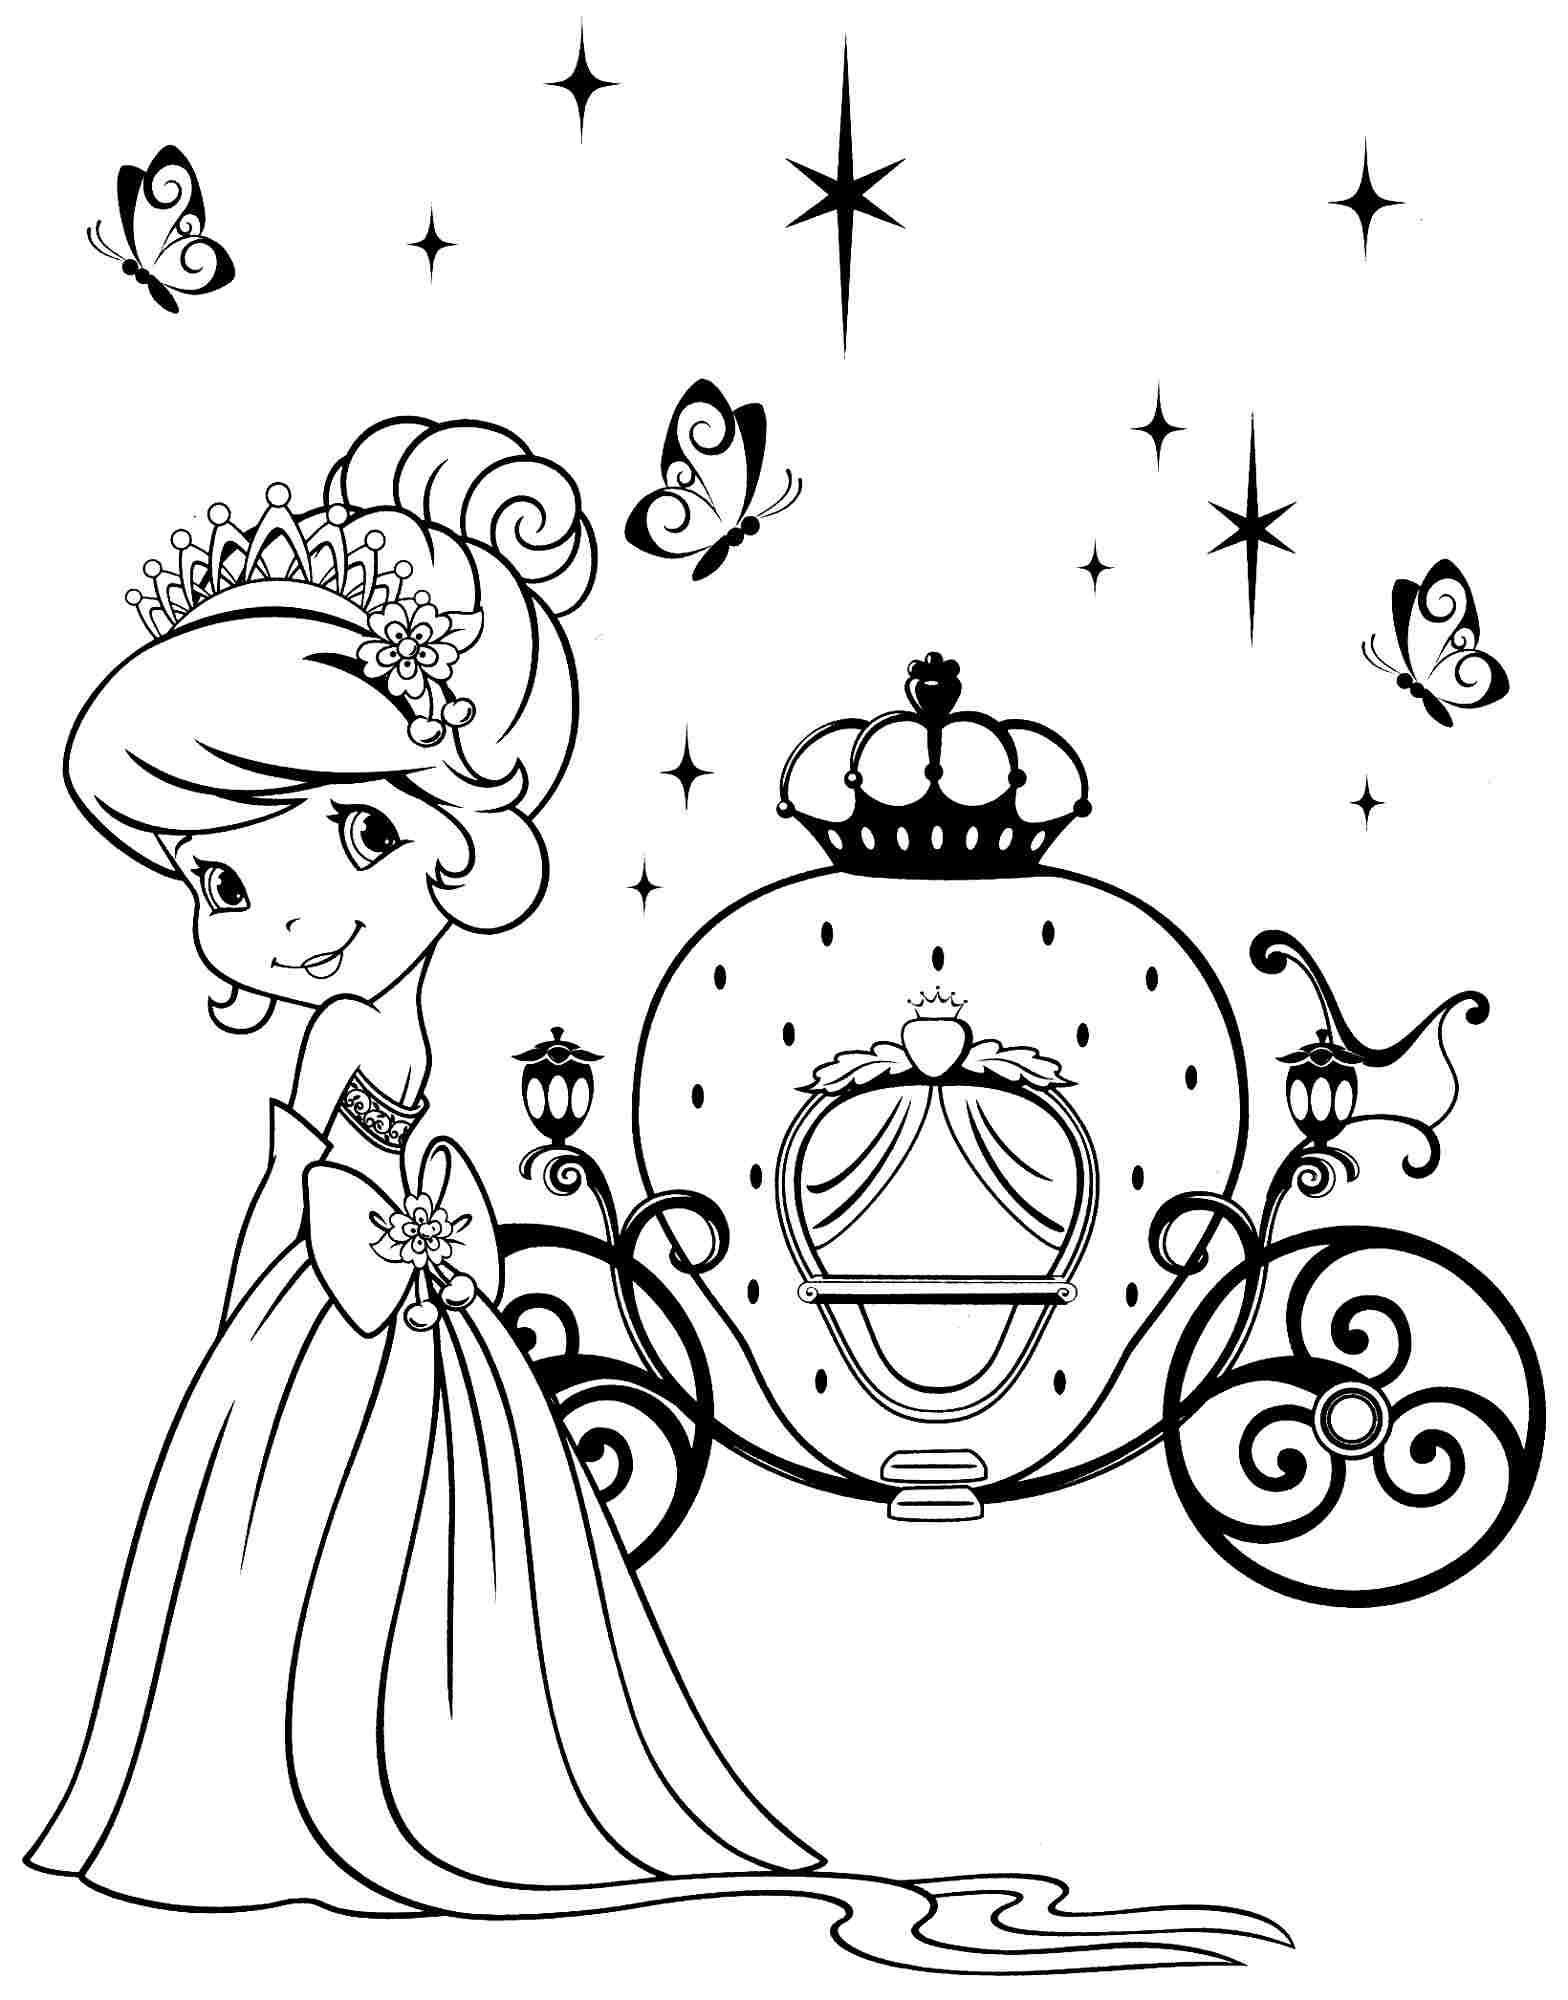 Print Full Size Image Free Printable Coloring Pages Cartoon Strawberry Shortcake C Strawberry Shortcake Coloring Pages Coloring Pages Princess Coloring Pages